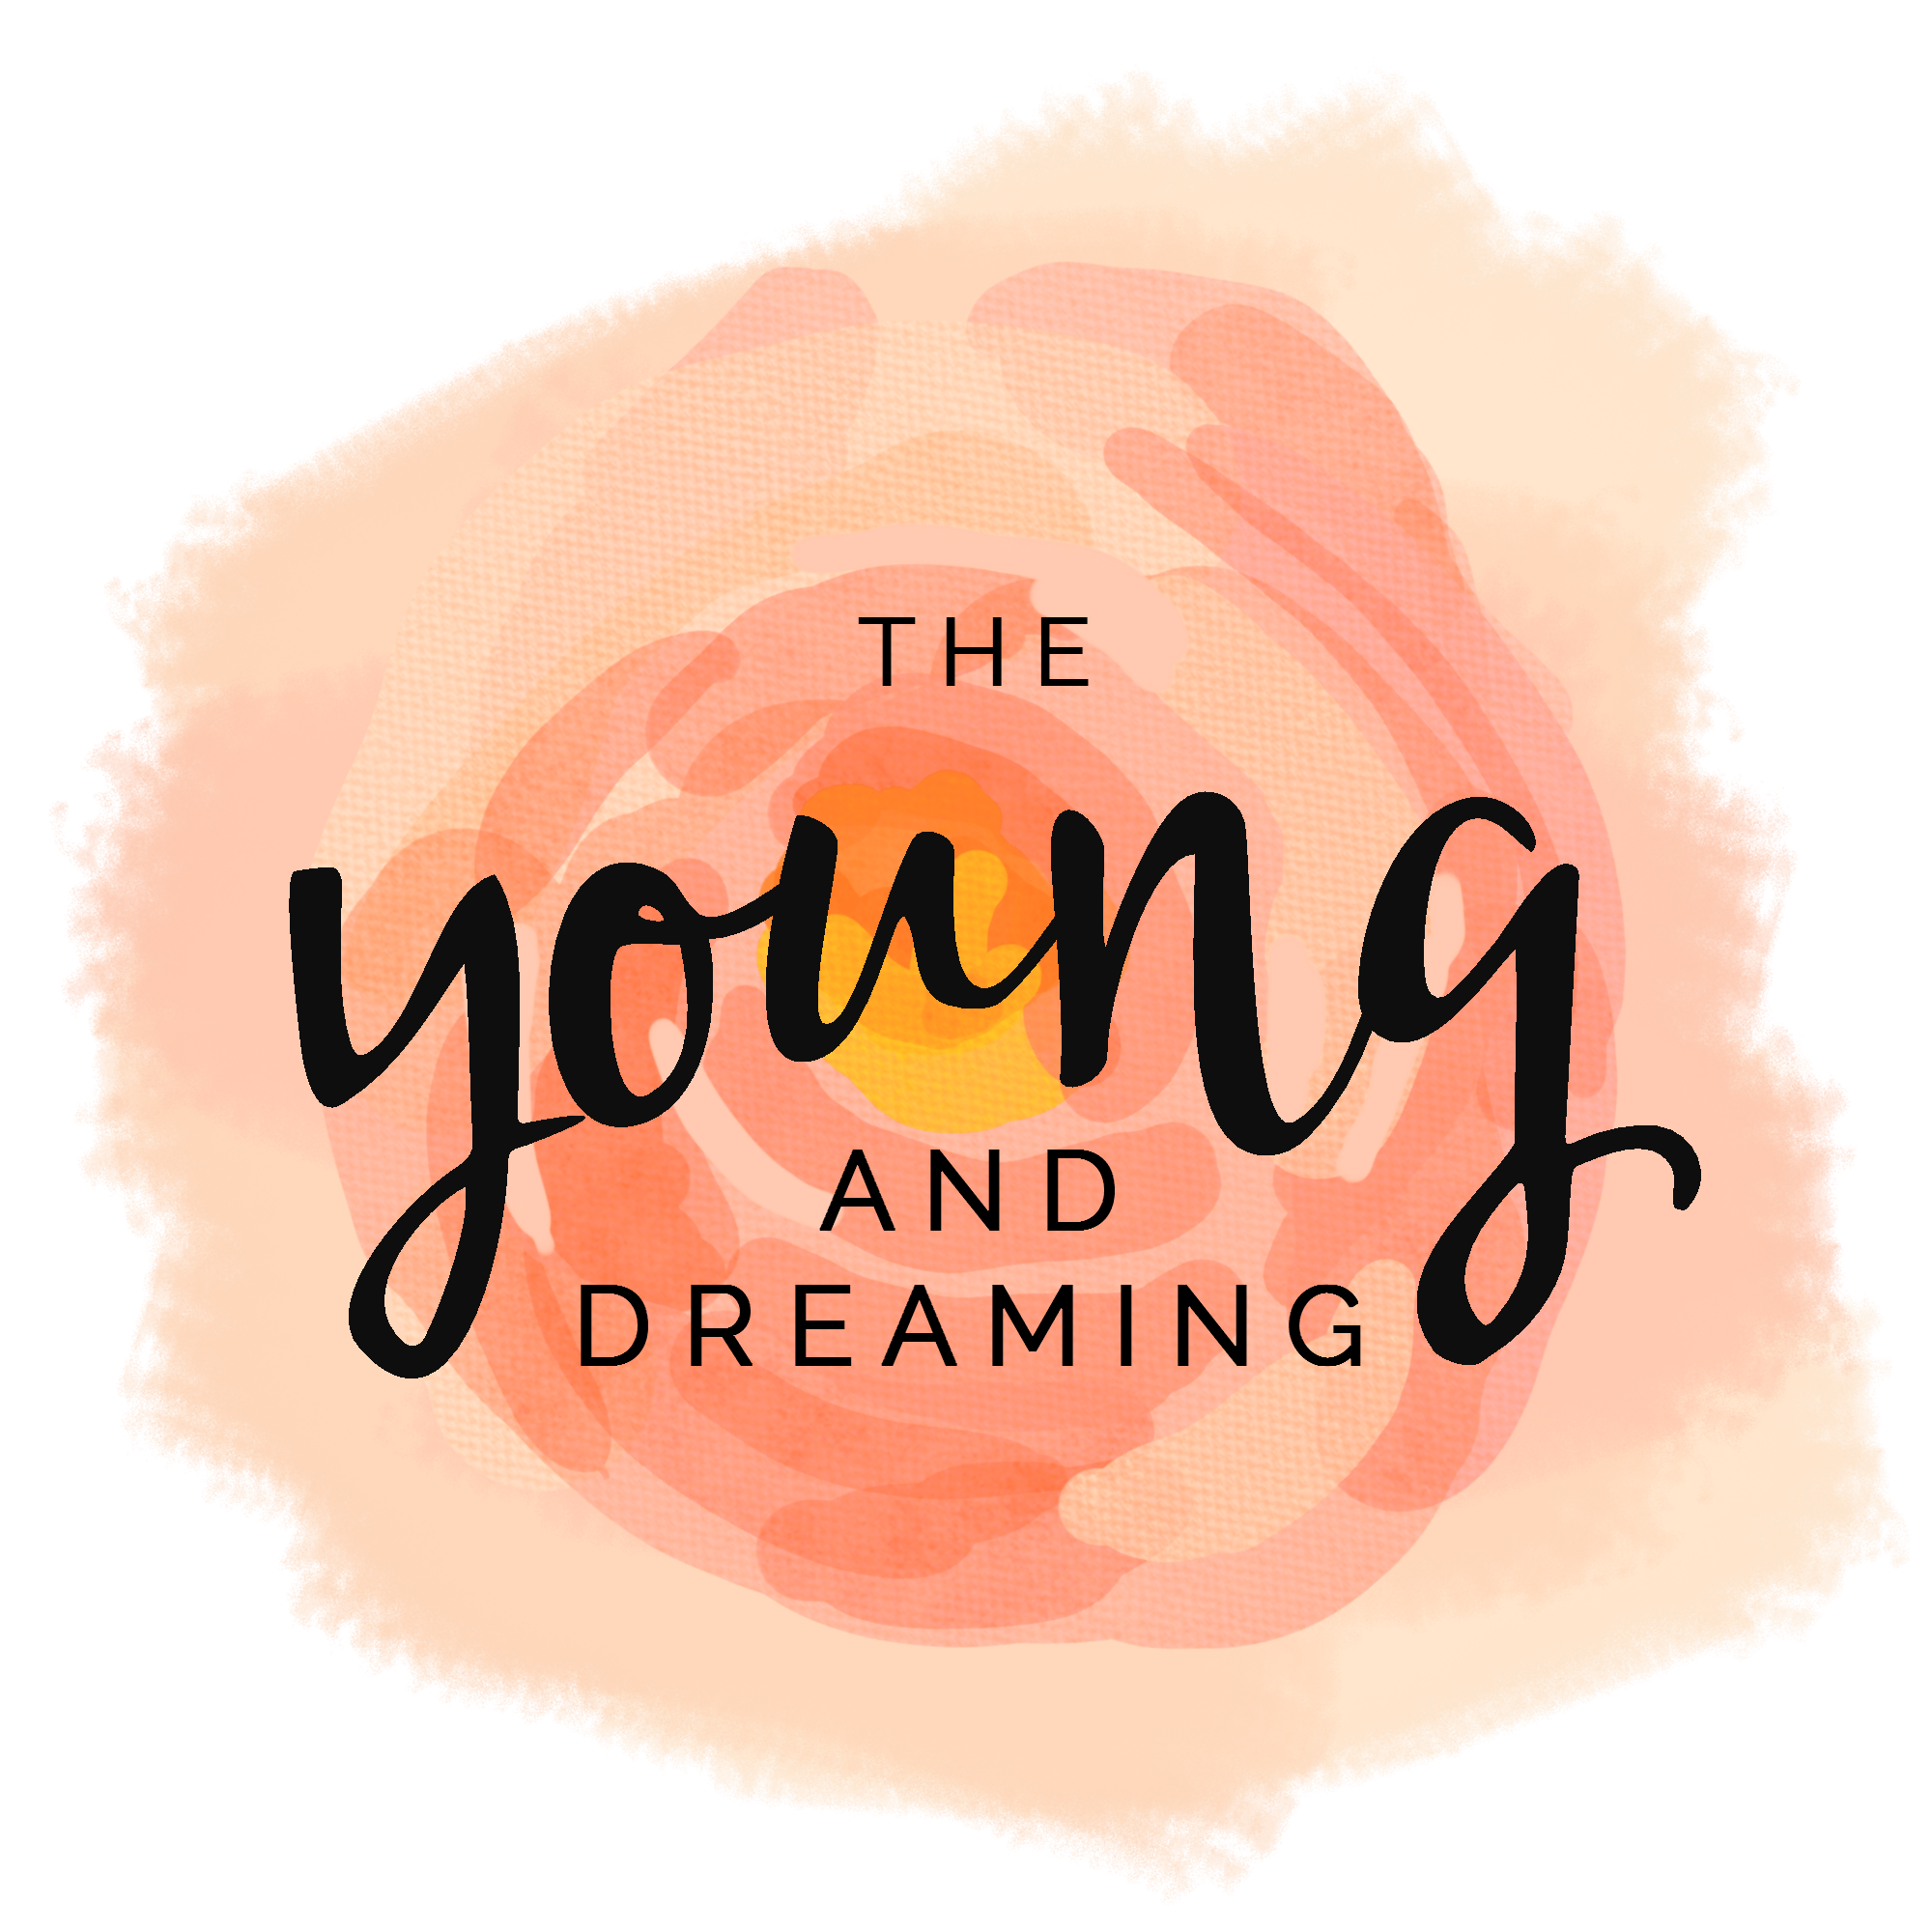 The Young and Dreaming